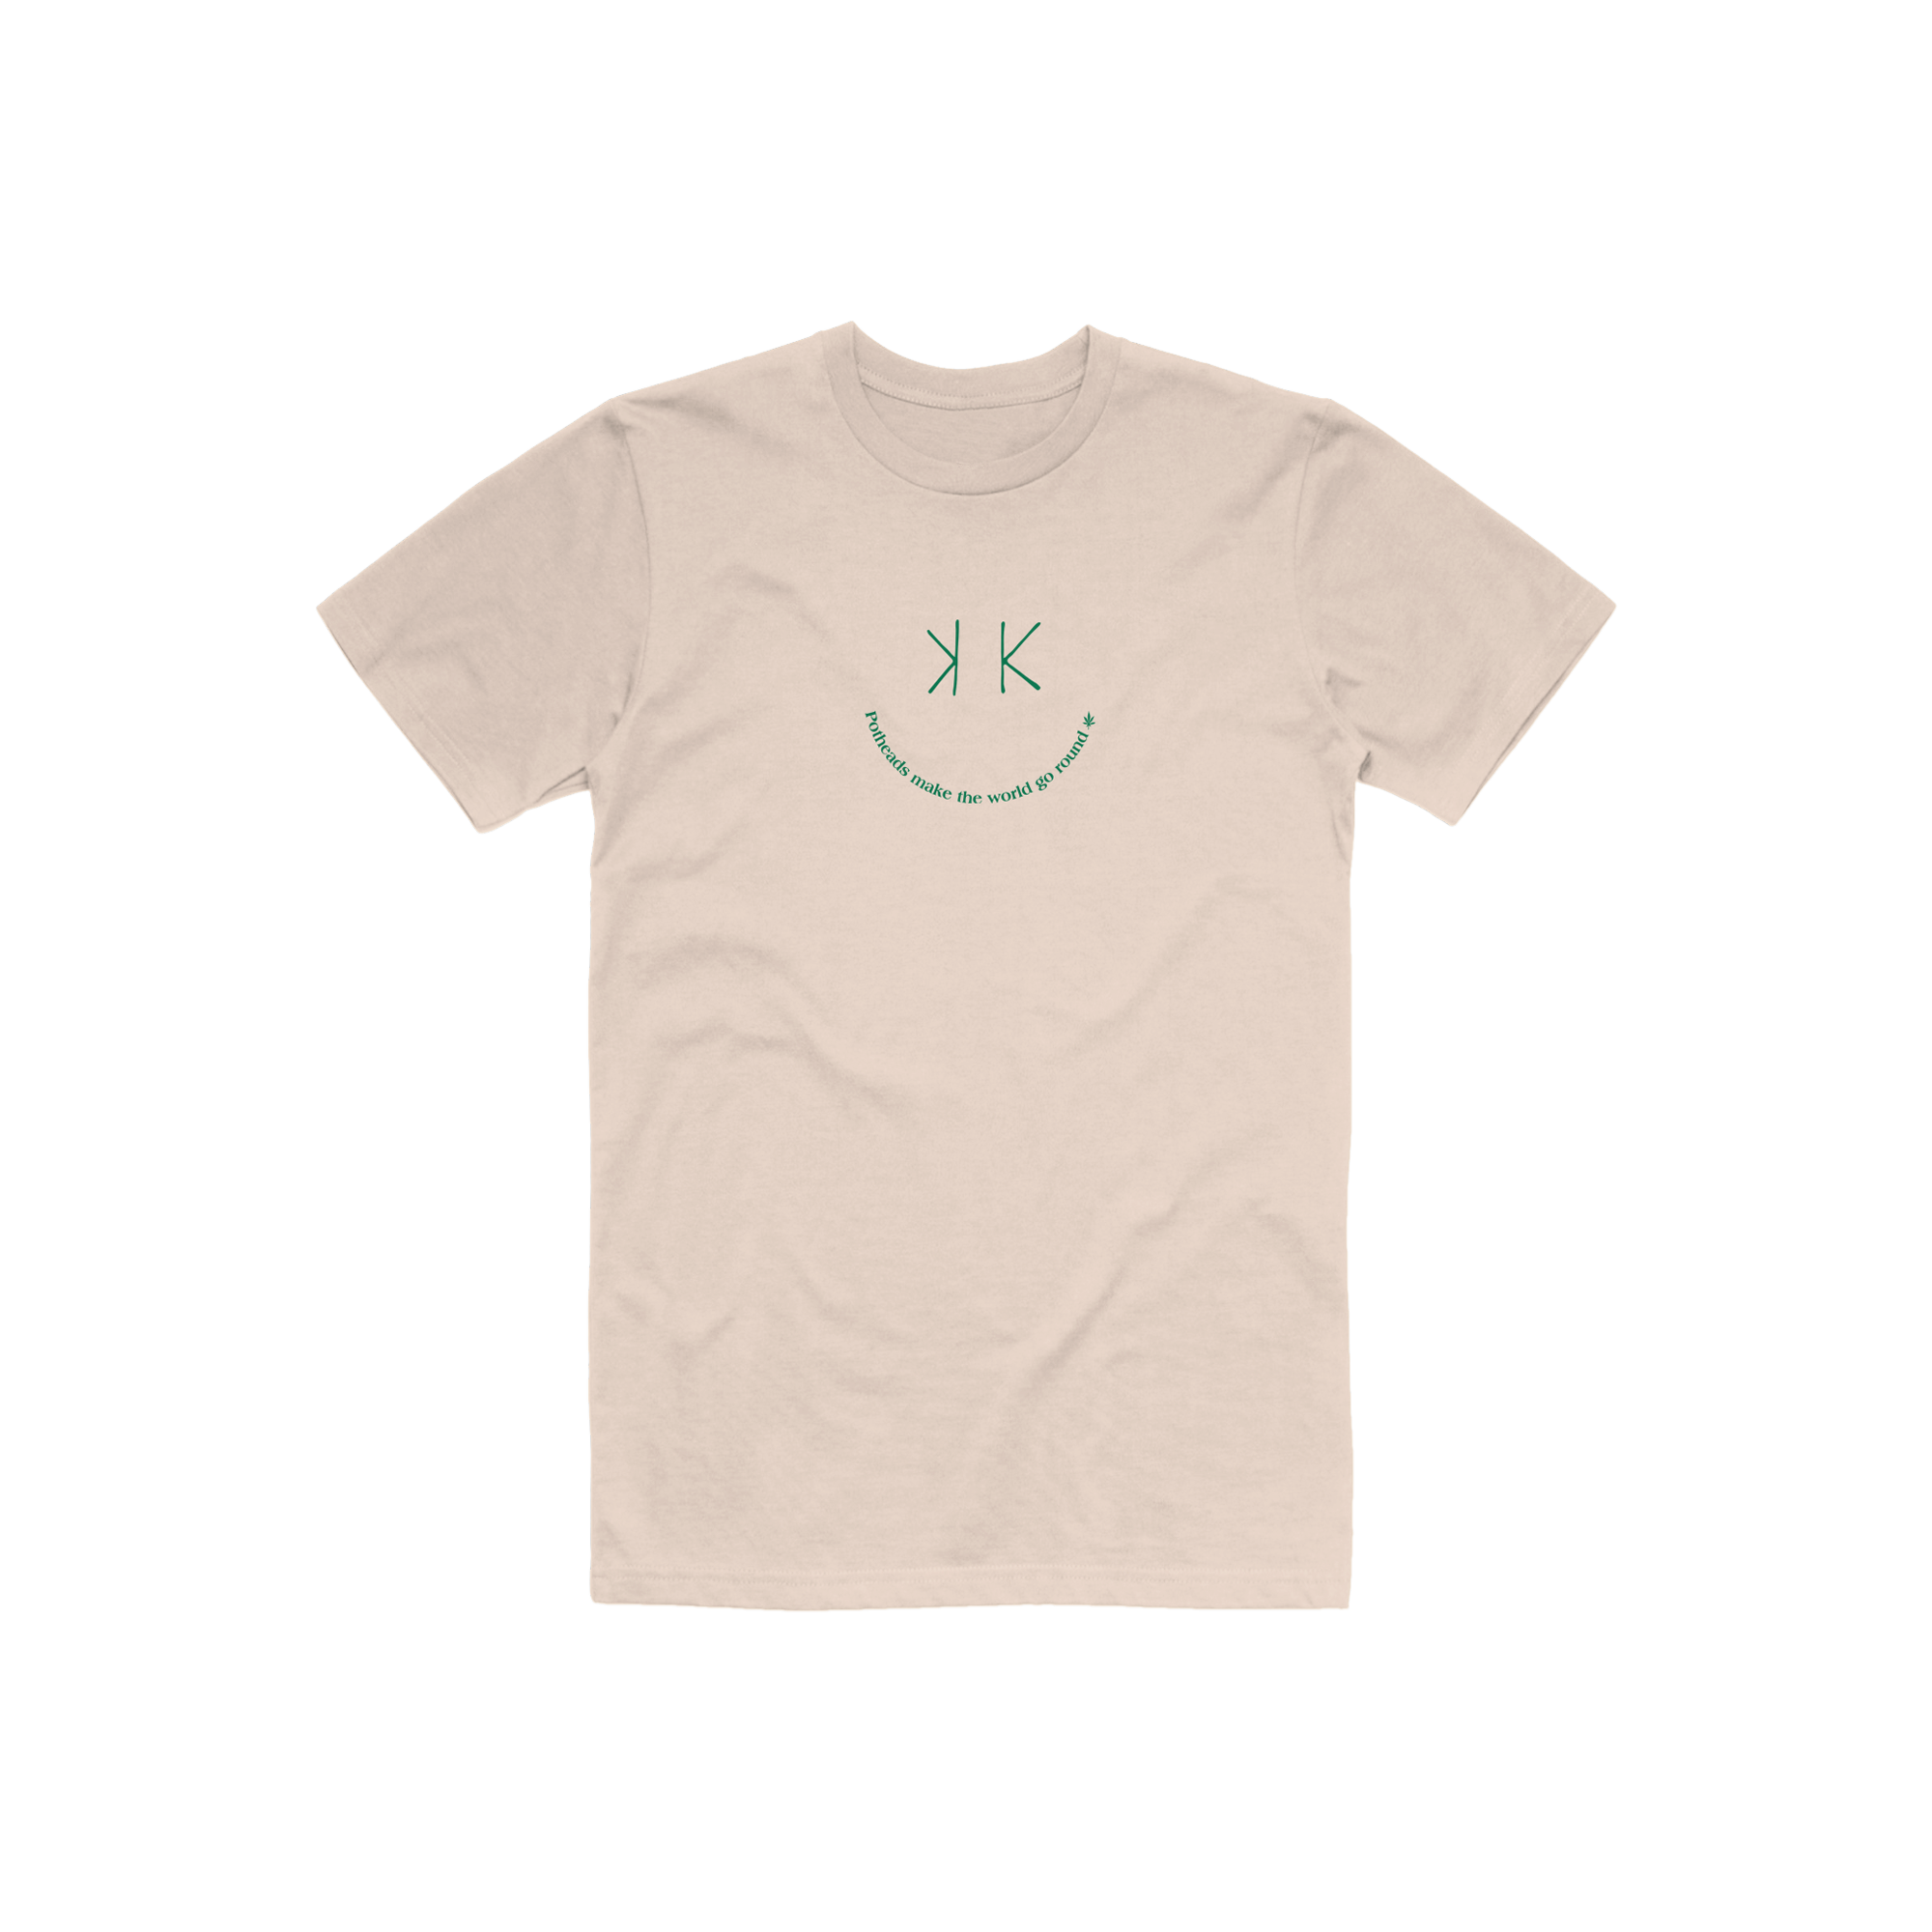 KK Smiley Tee - Khalifa Kush